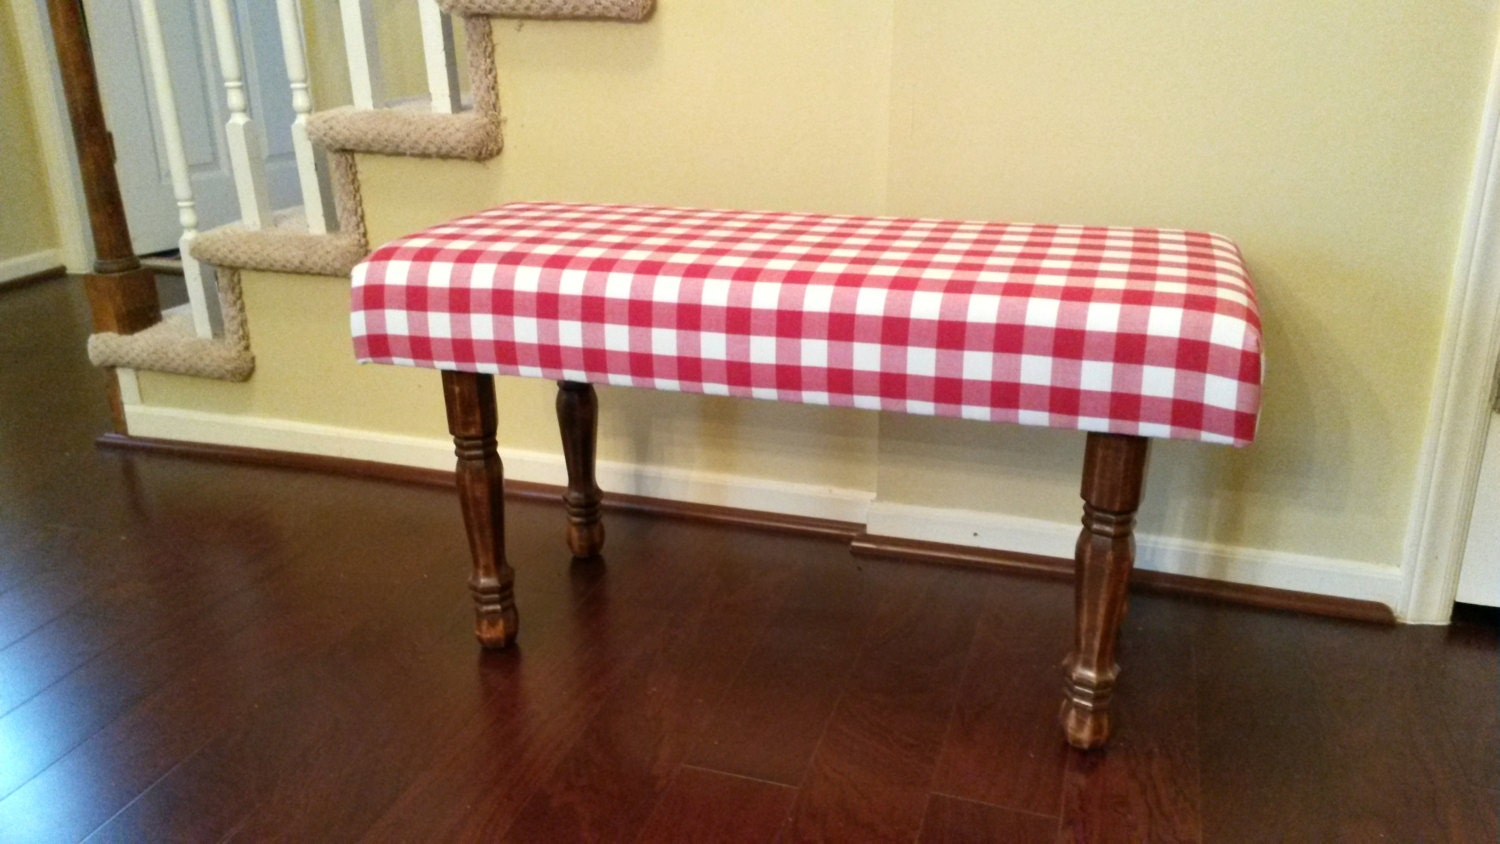 Upholstered Bench Red And White Gingham